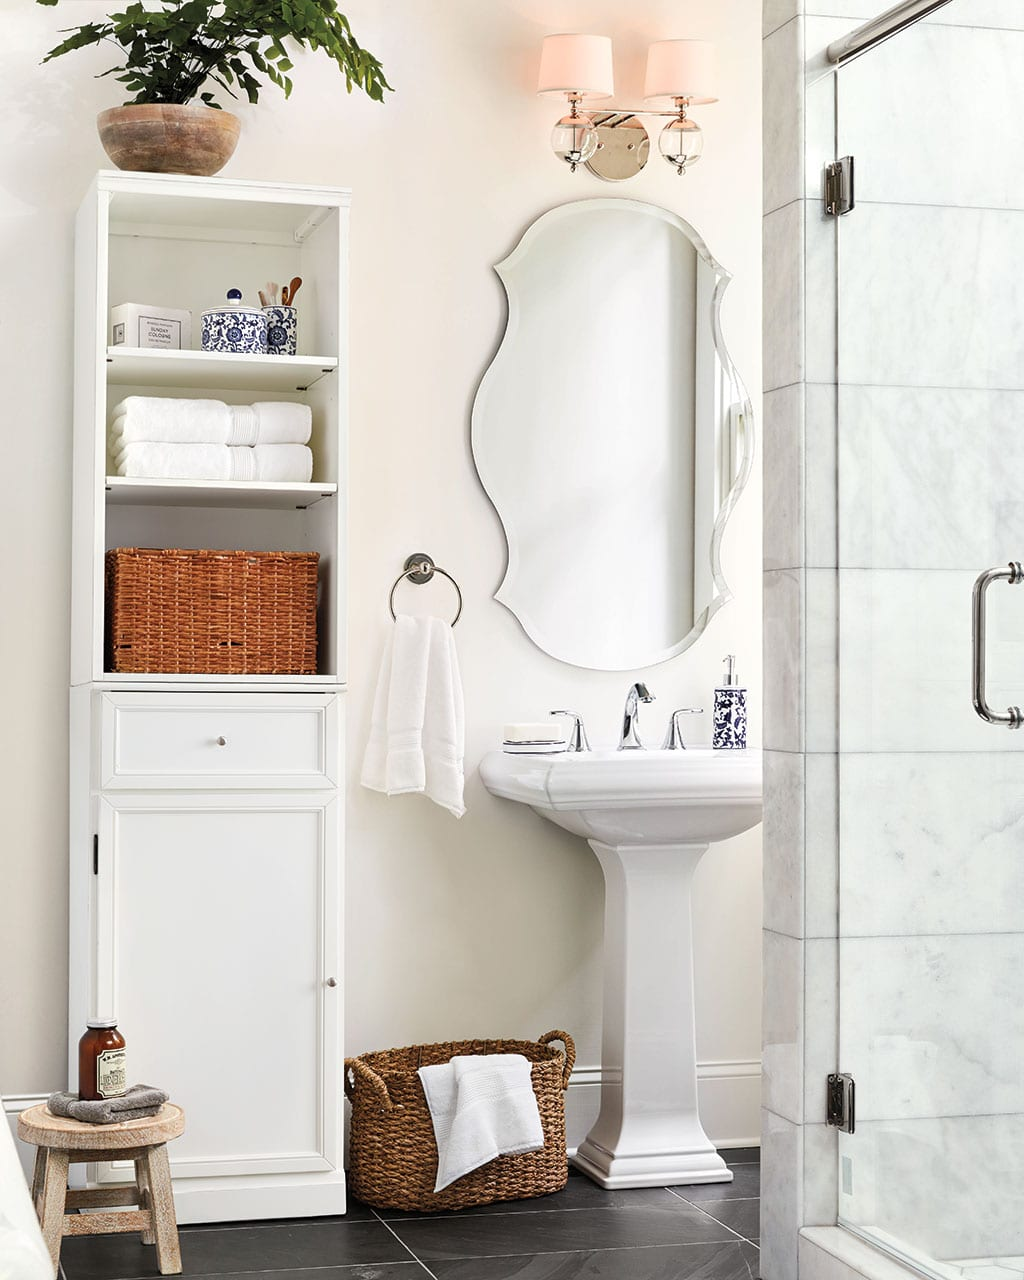 proper height for towel bars and rings